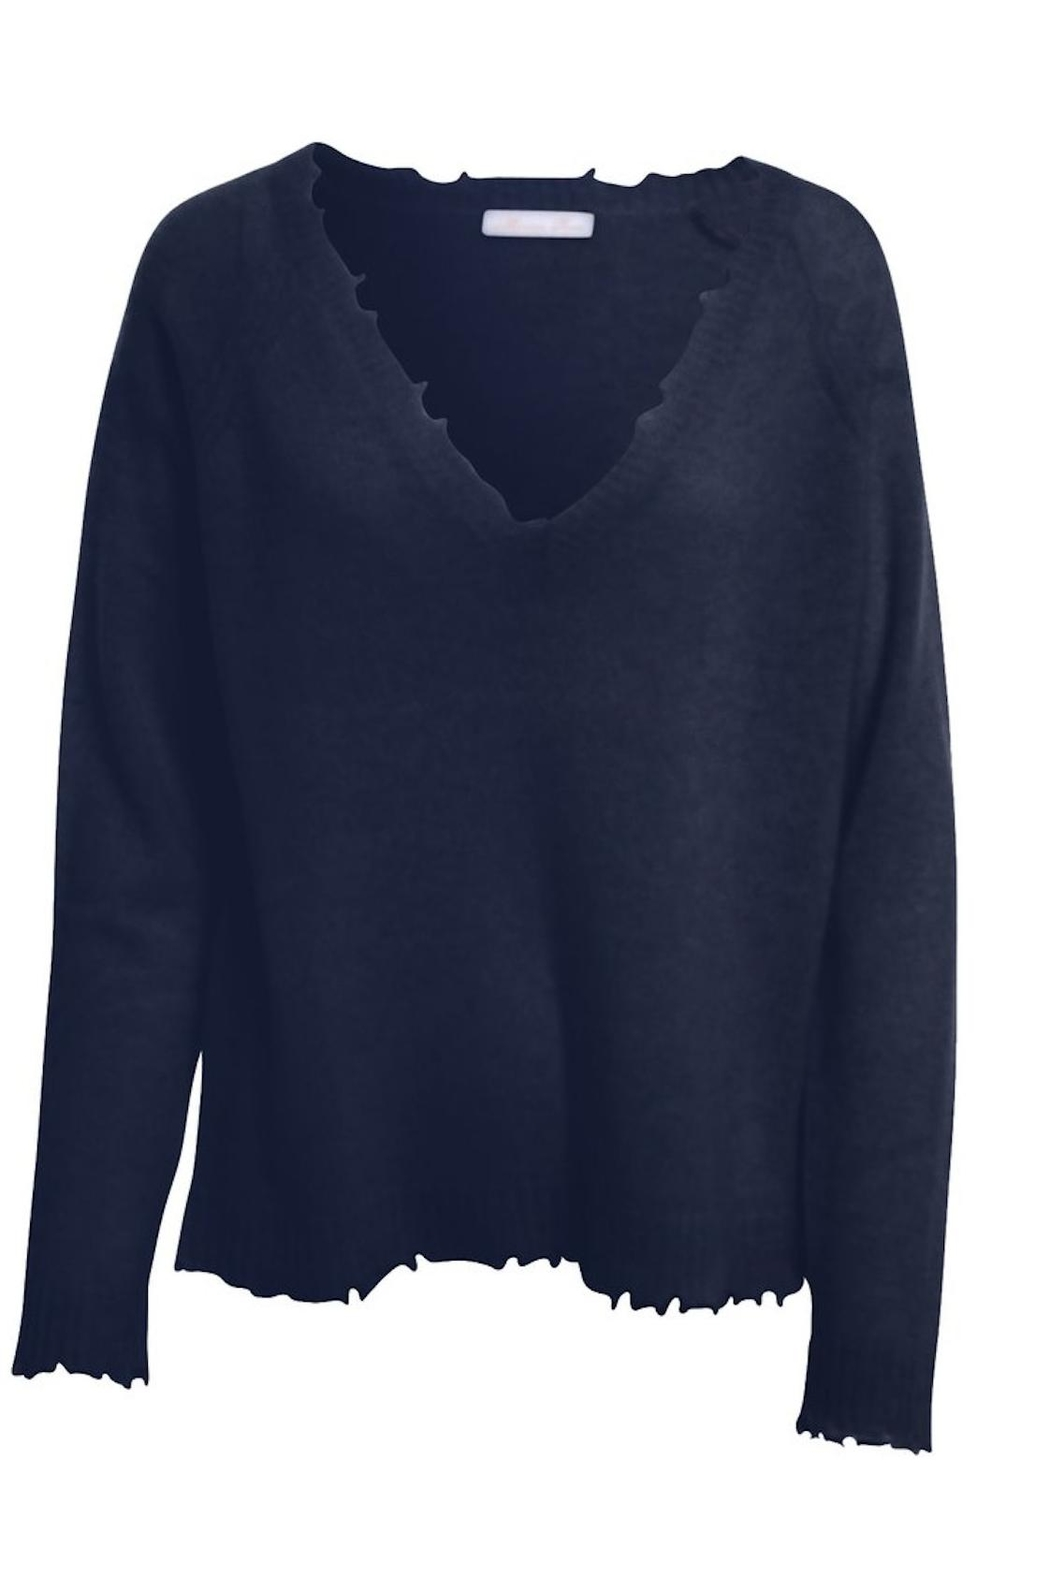 Minnie Rose Frayed Edge Sweater from New Hampshire by ONYX Boutique ...